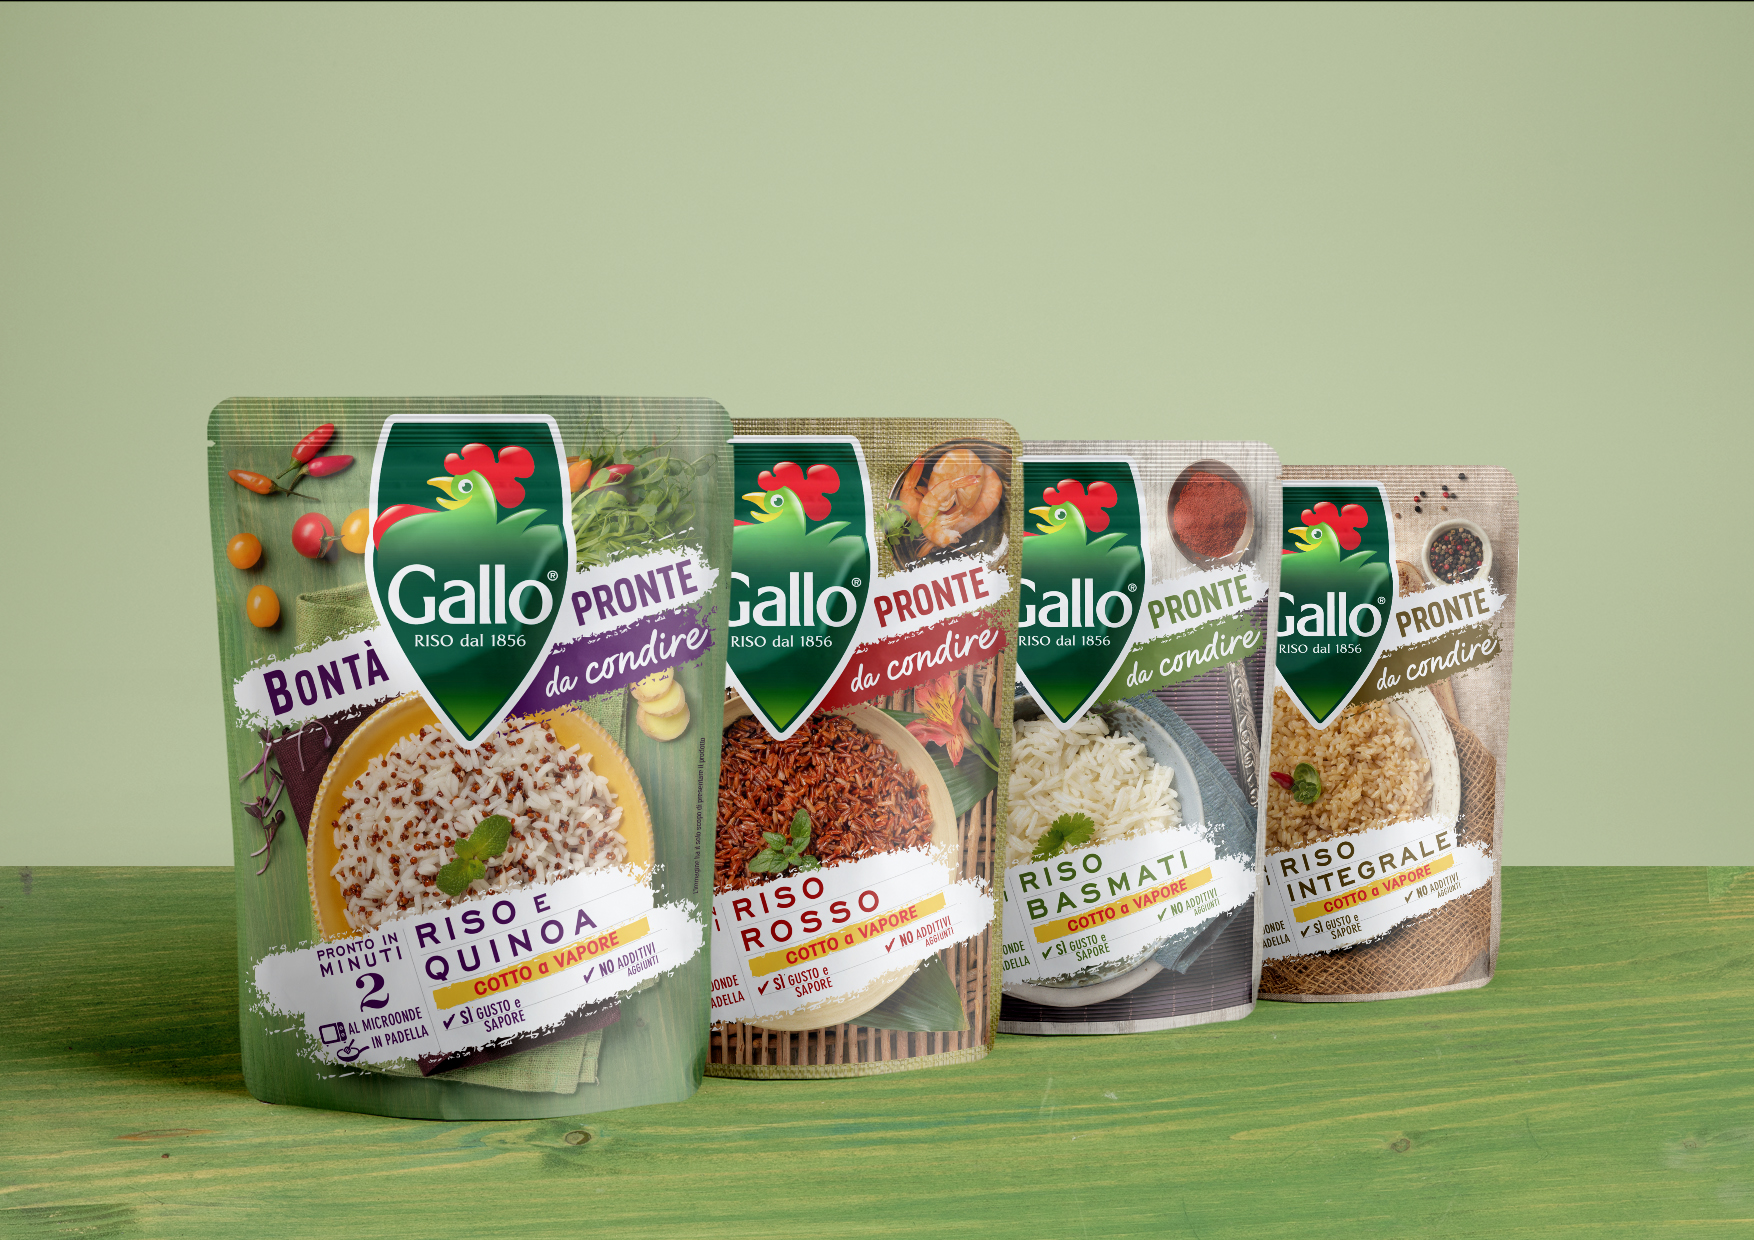 New Visual Identity for a Riso Gallo Ready to Eat Products